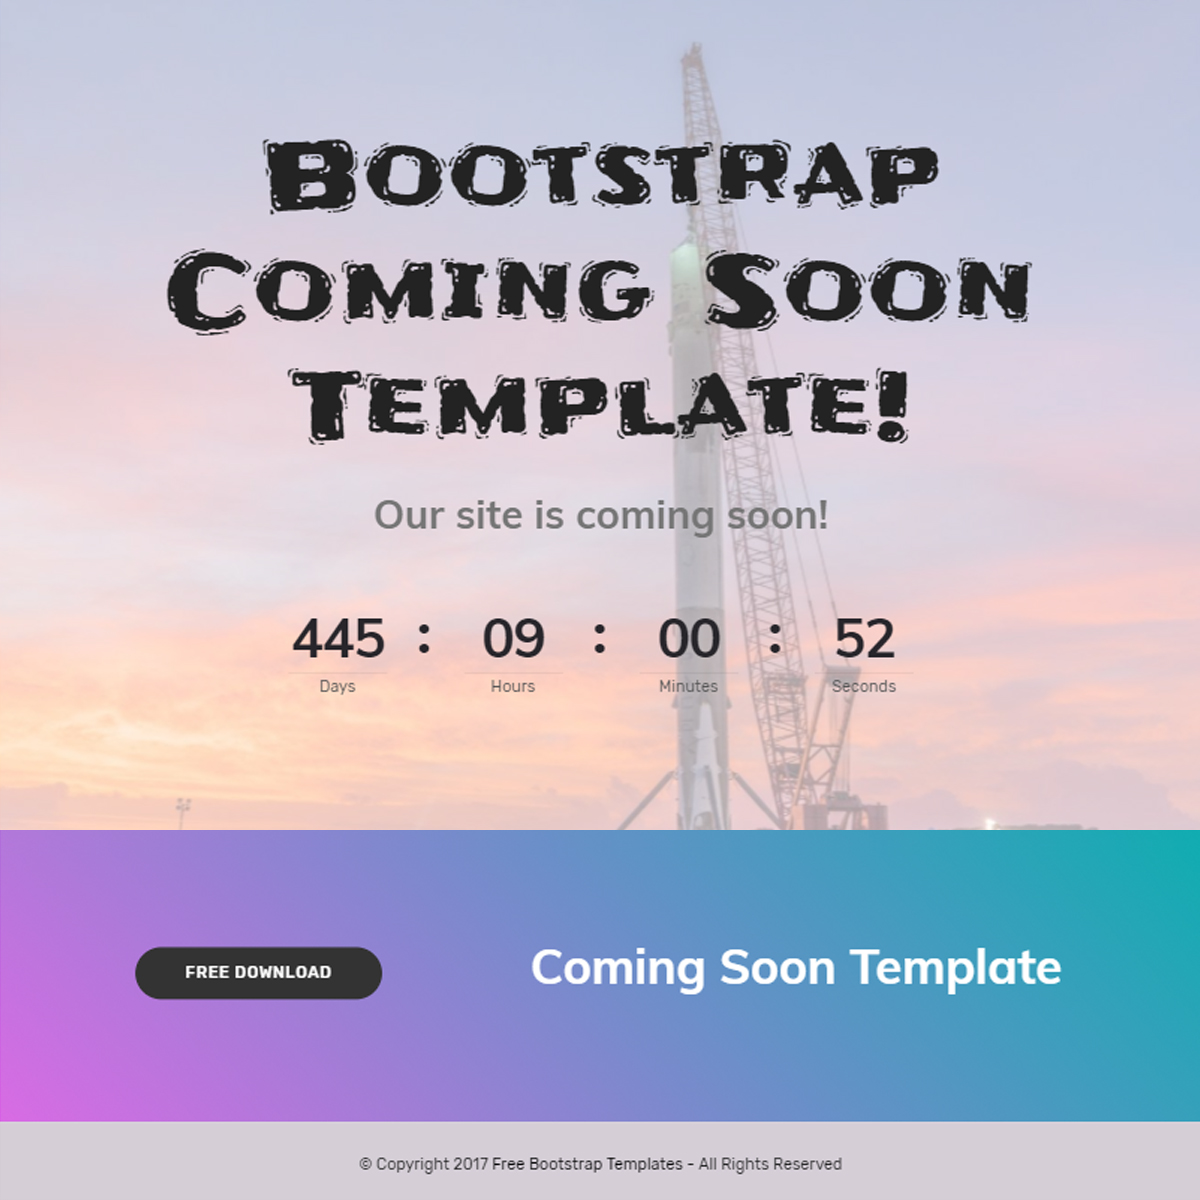 HTML Bootstrap Coming Soon Templates